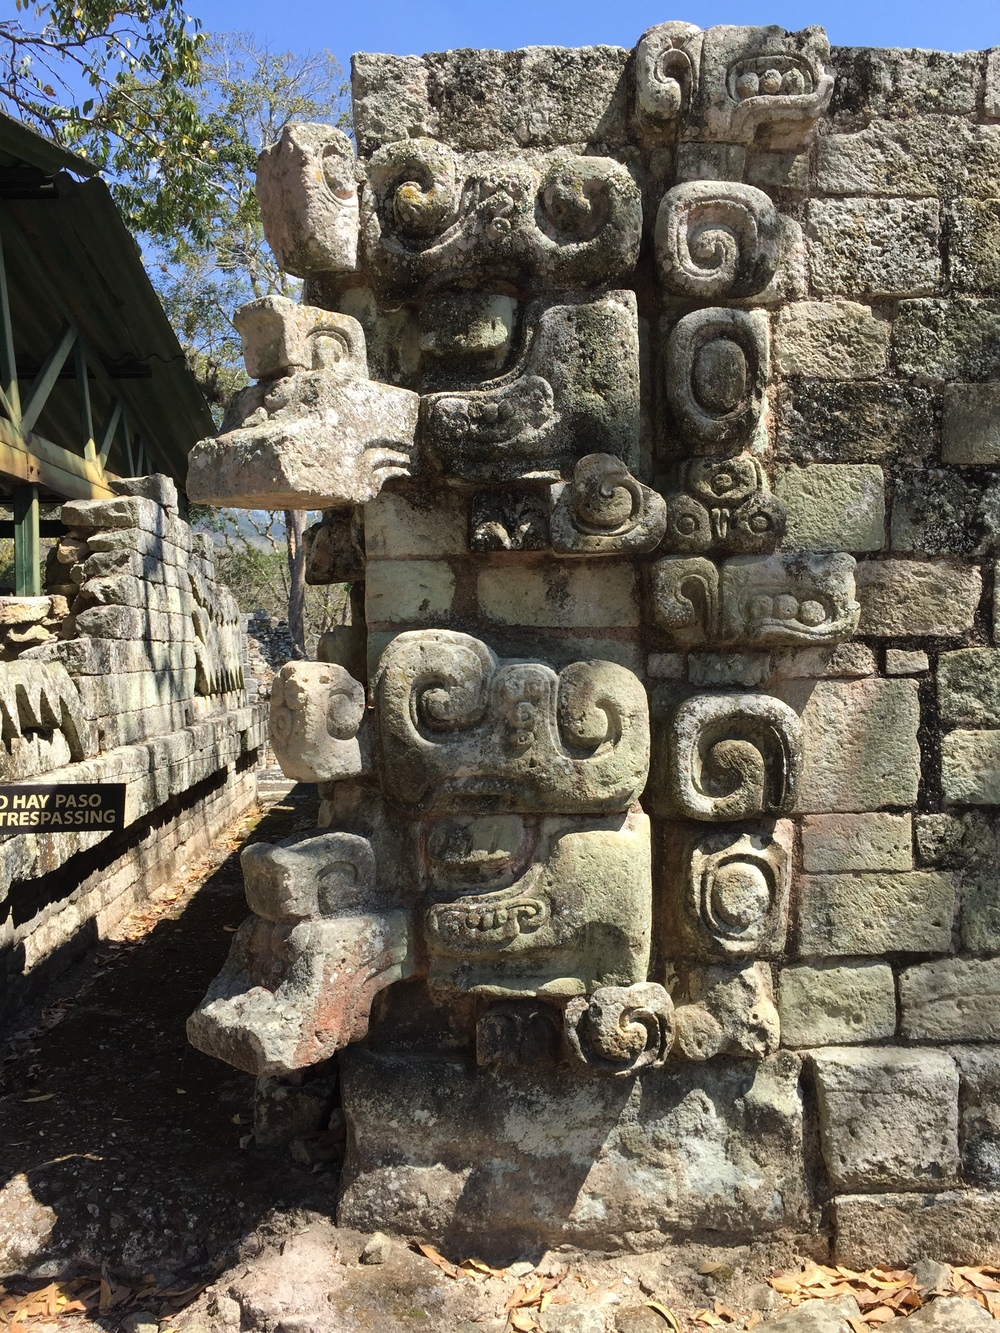 Close-up of stone carvings at Copán, Honduras.